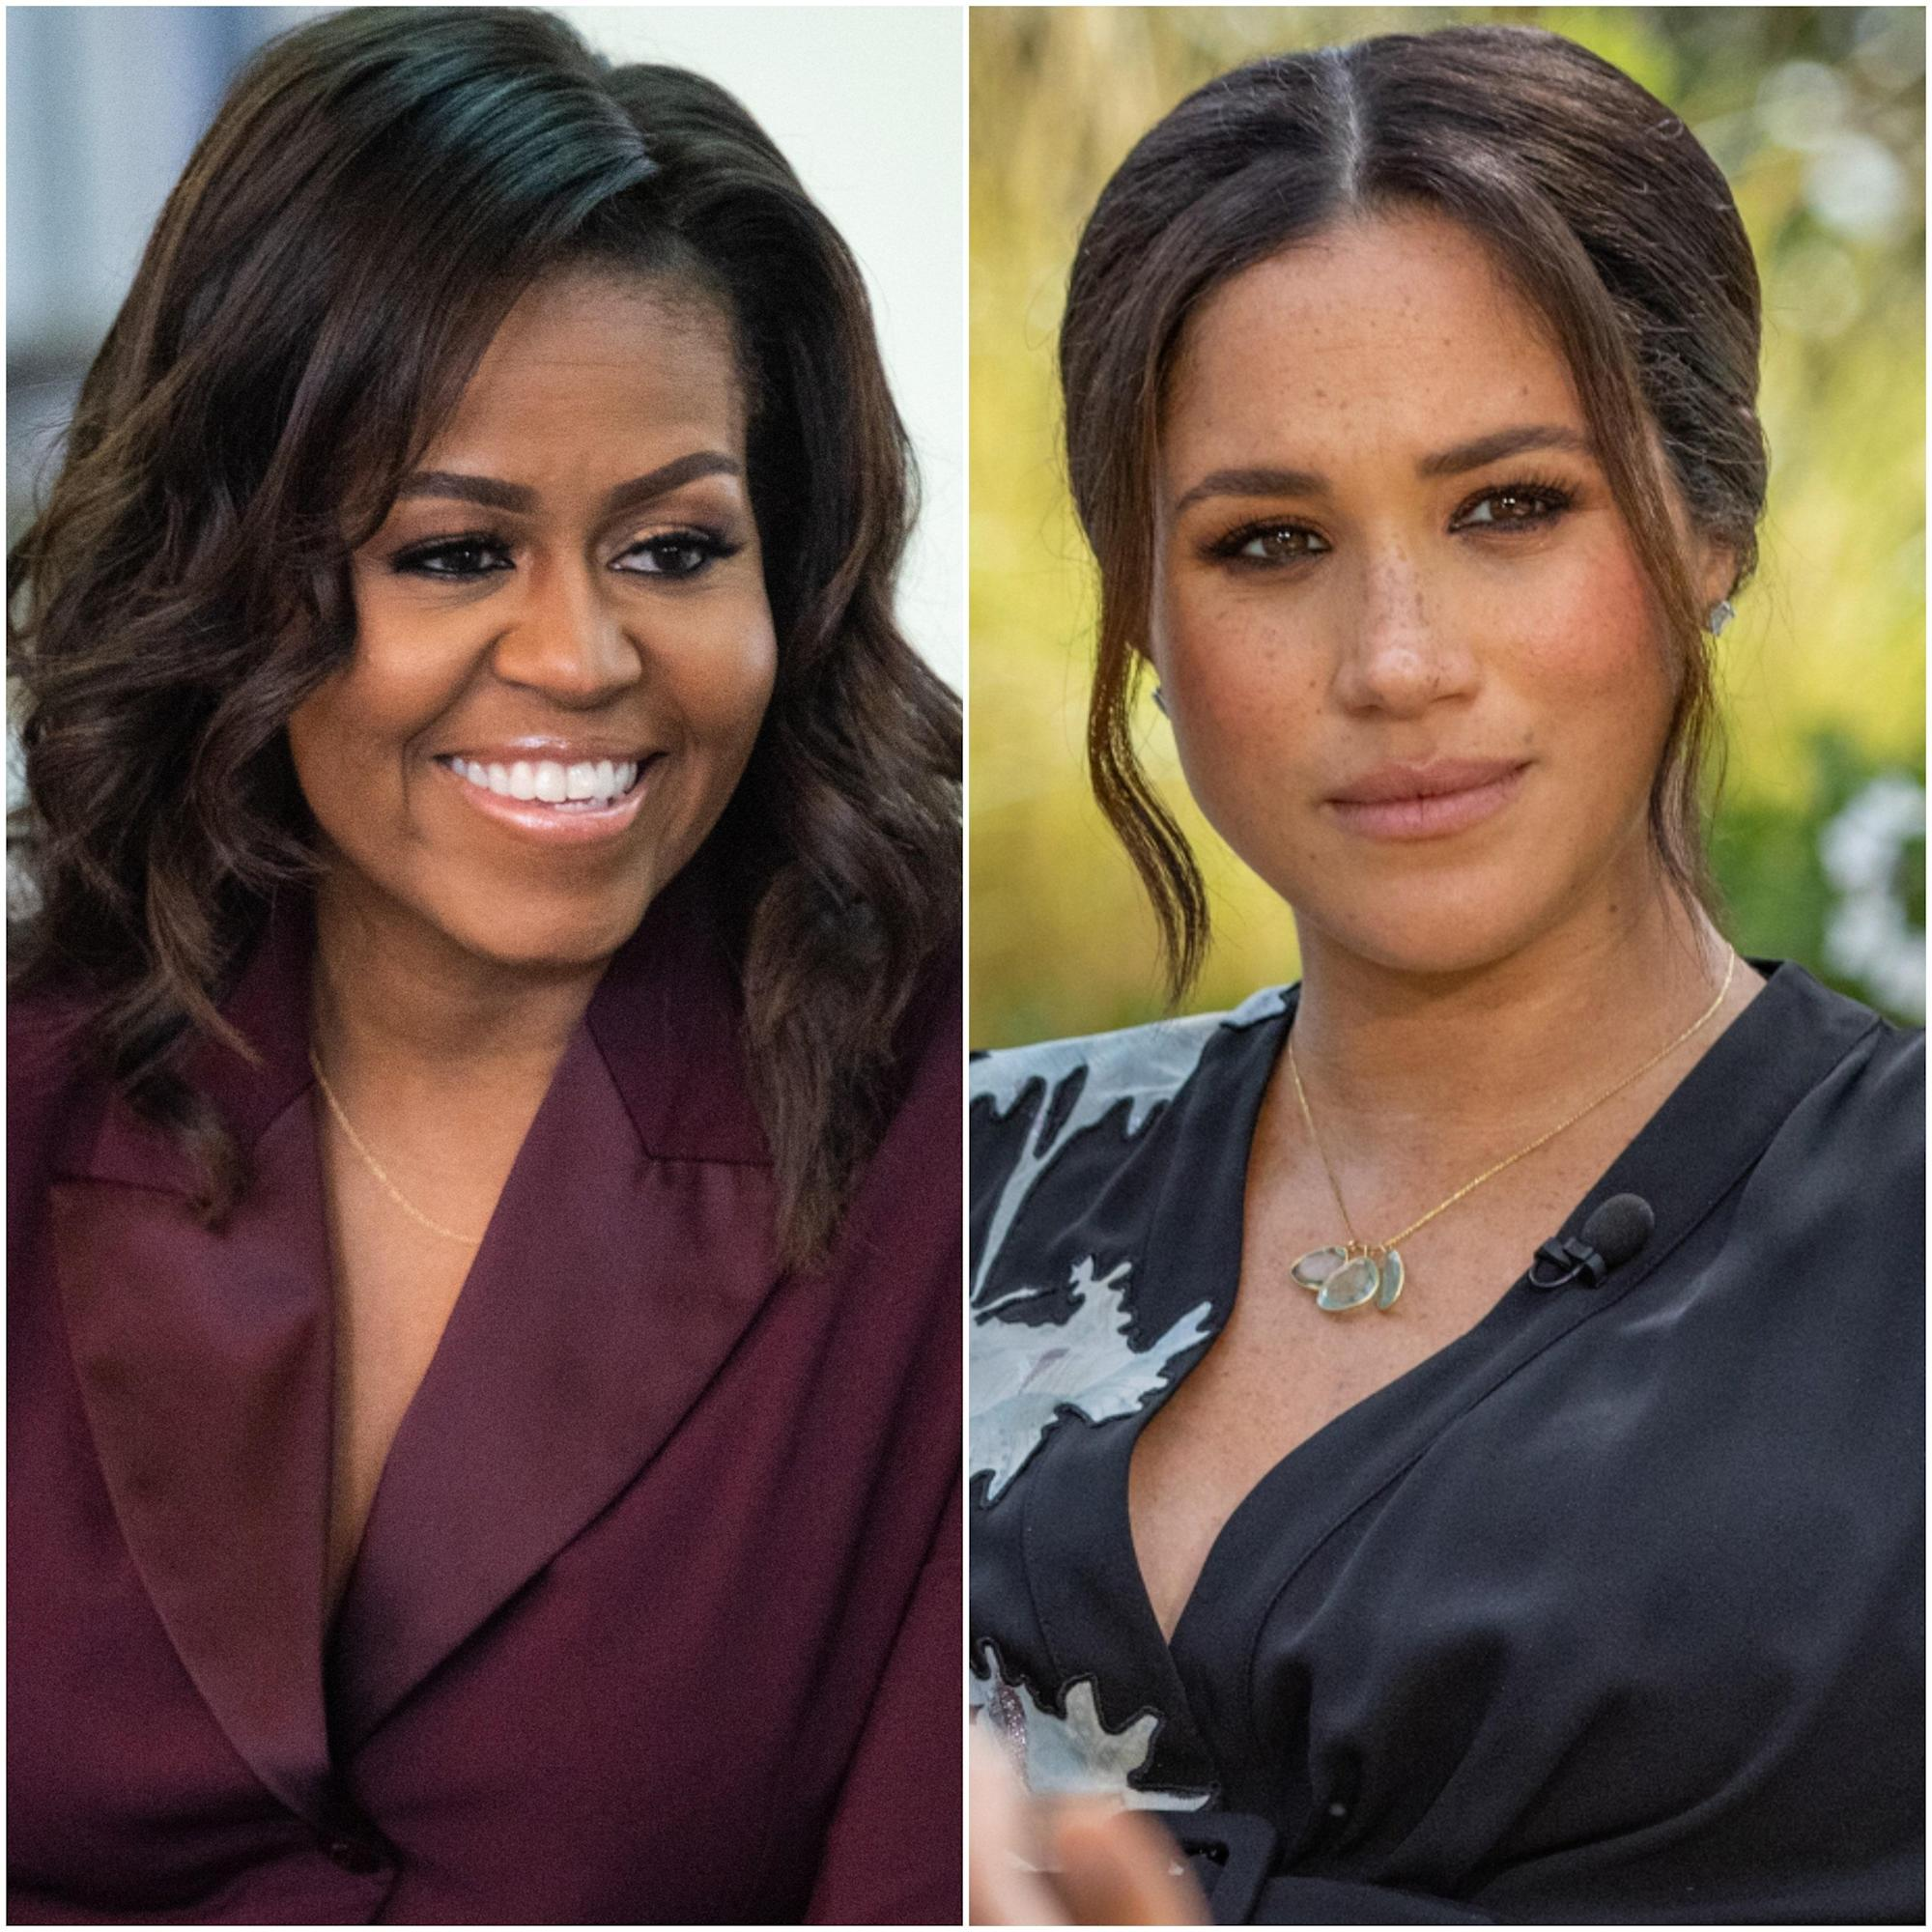 Michelle Obama Has Some Thoughts About Meghan Markle's Oprah Interview... image